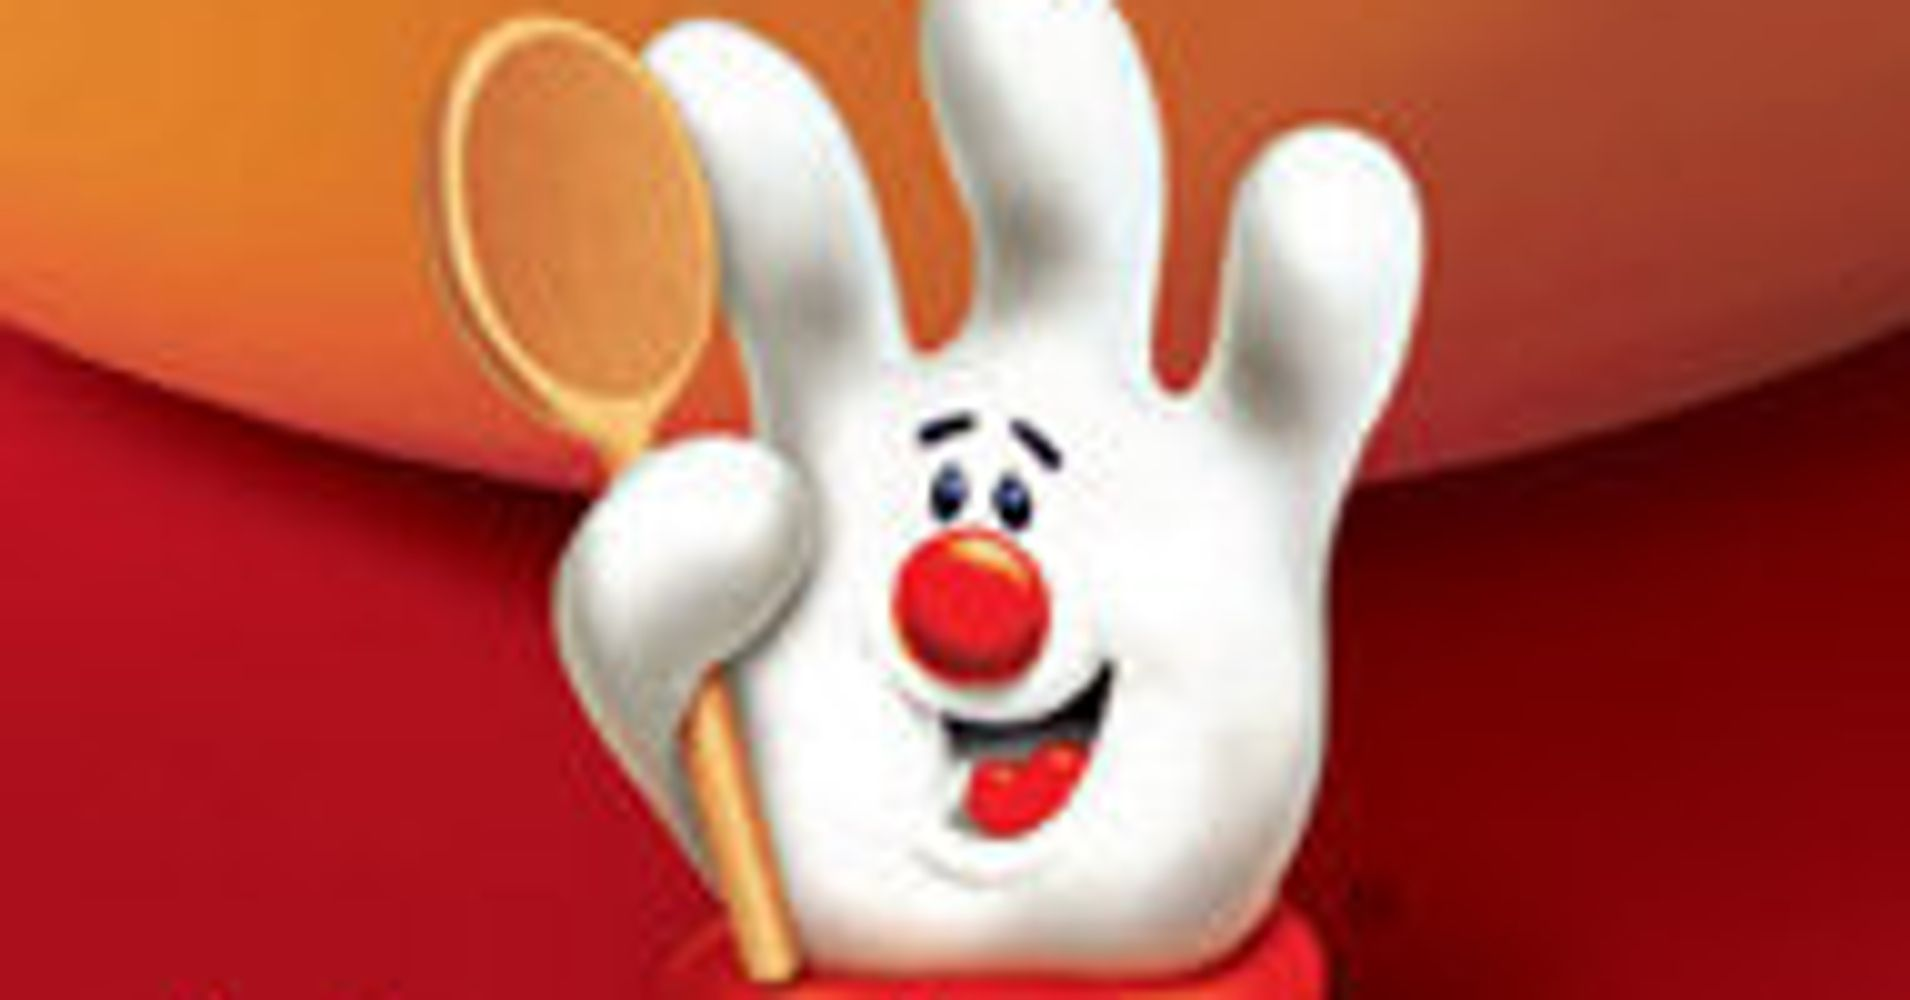 Hamburger Helper Reveals What's Inside The Glove, And It's Freaking People Out